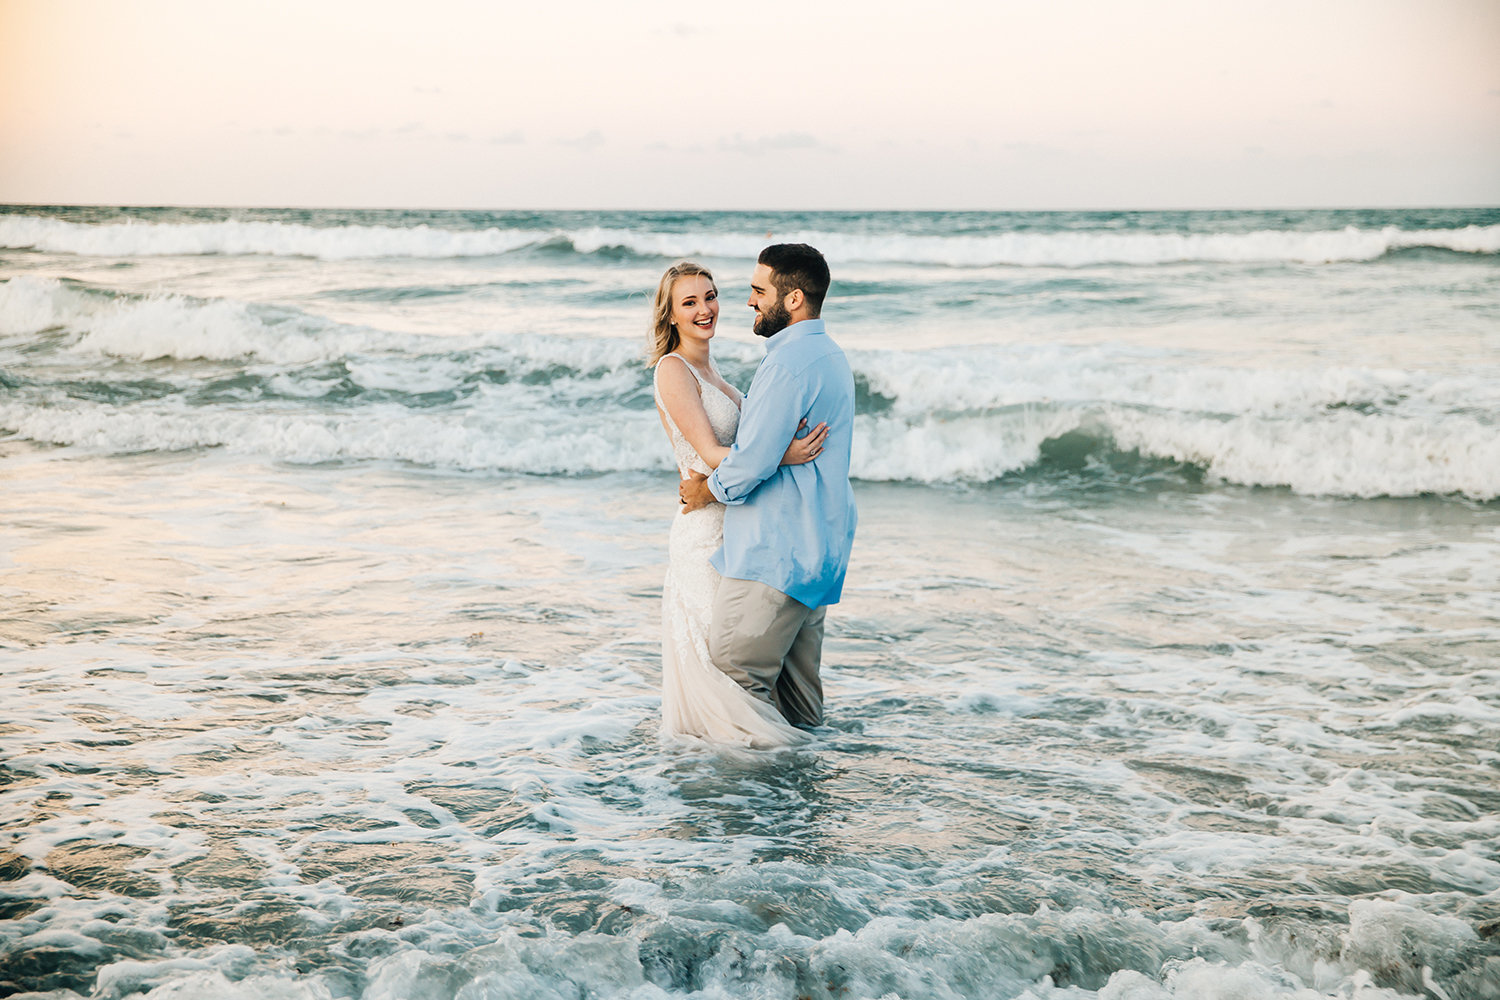 bride-groom-playing-in-ocean-melbourne-florida